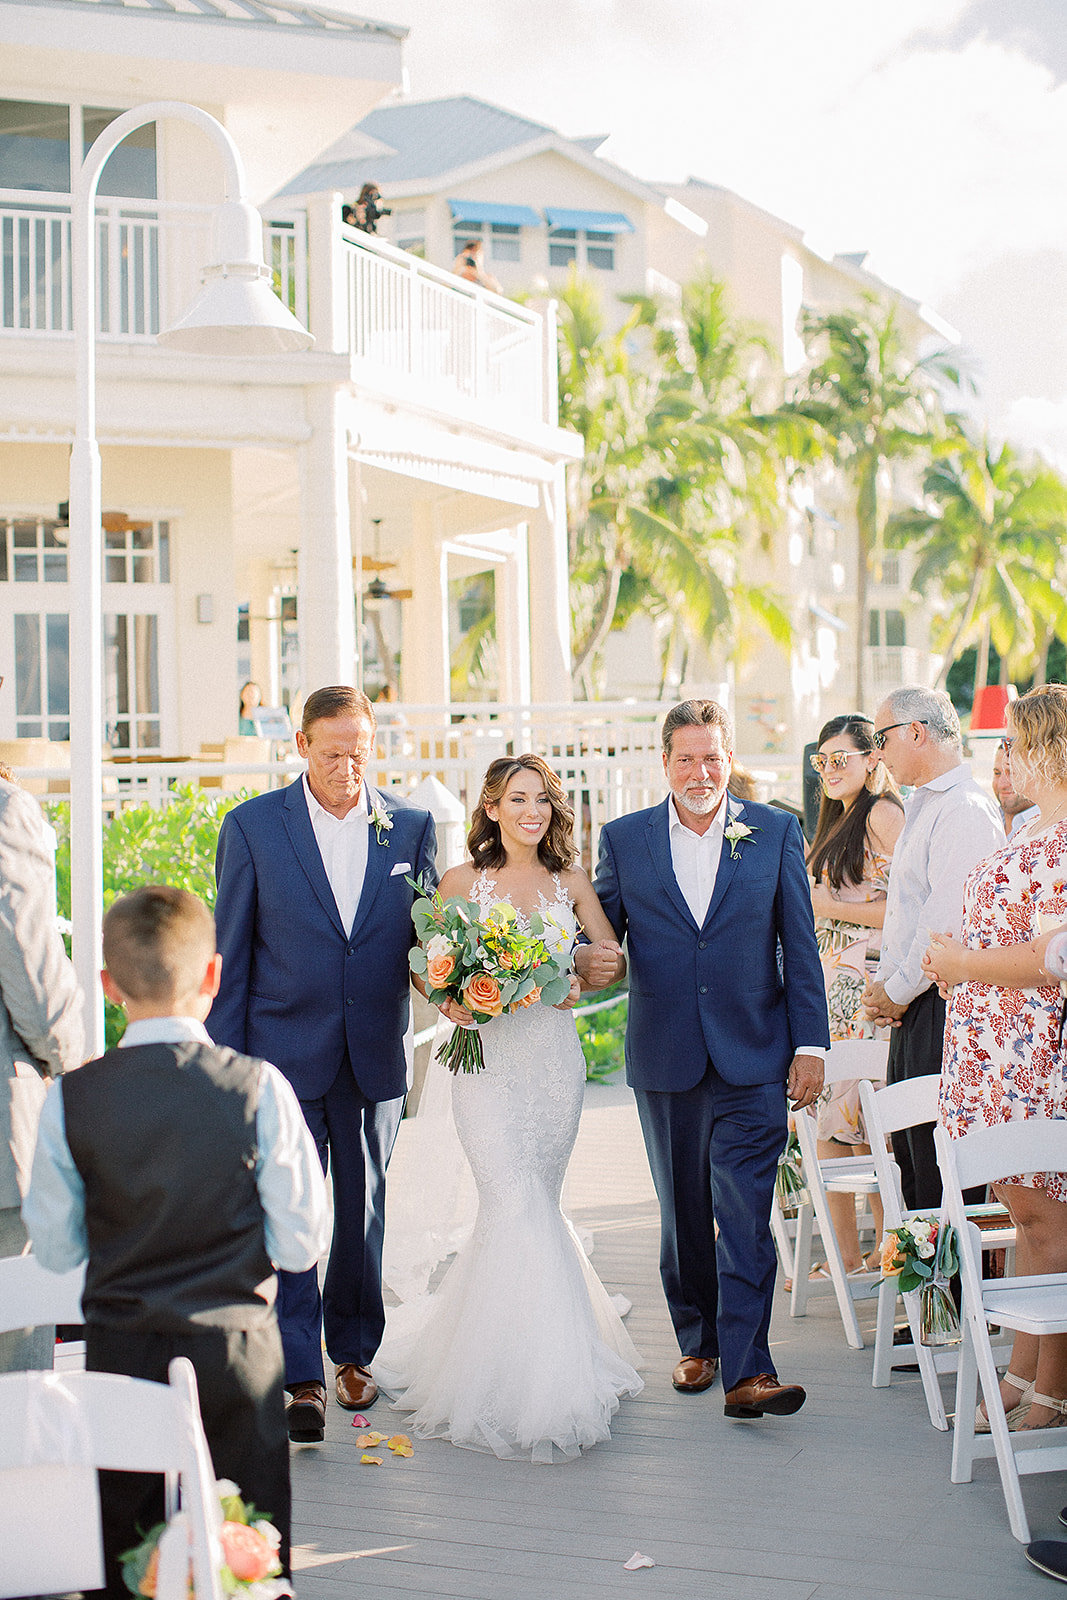 Aubry___Bill_Forsyth_Hyatt_Centric_Key_West_Wedding_Photographer_Casie_Marie_Photography-767